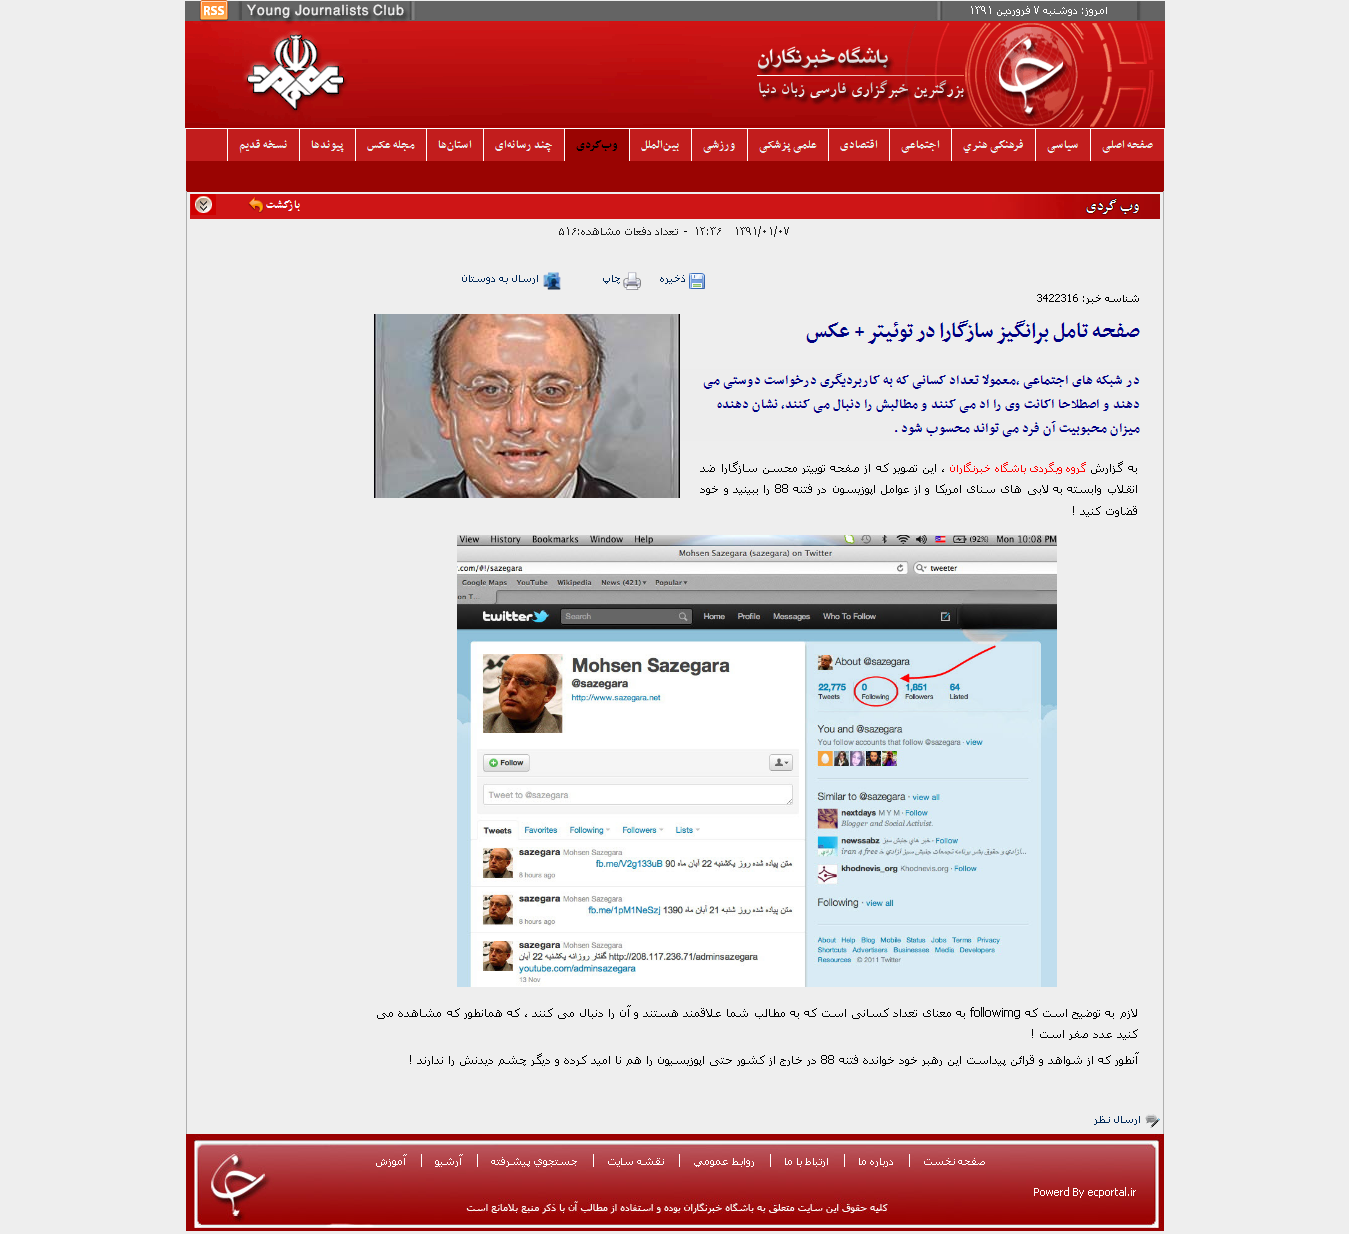 Iranian Official News Agency Lying About Mohsen Sazegara's Twitter Account